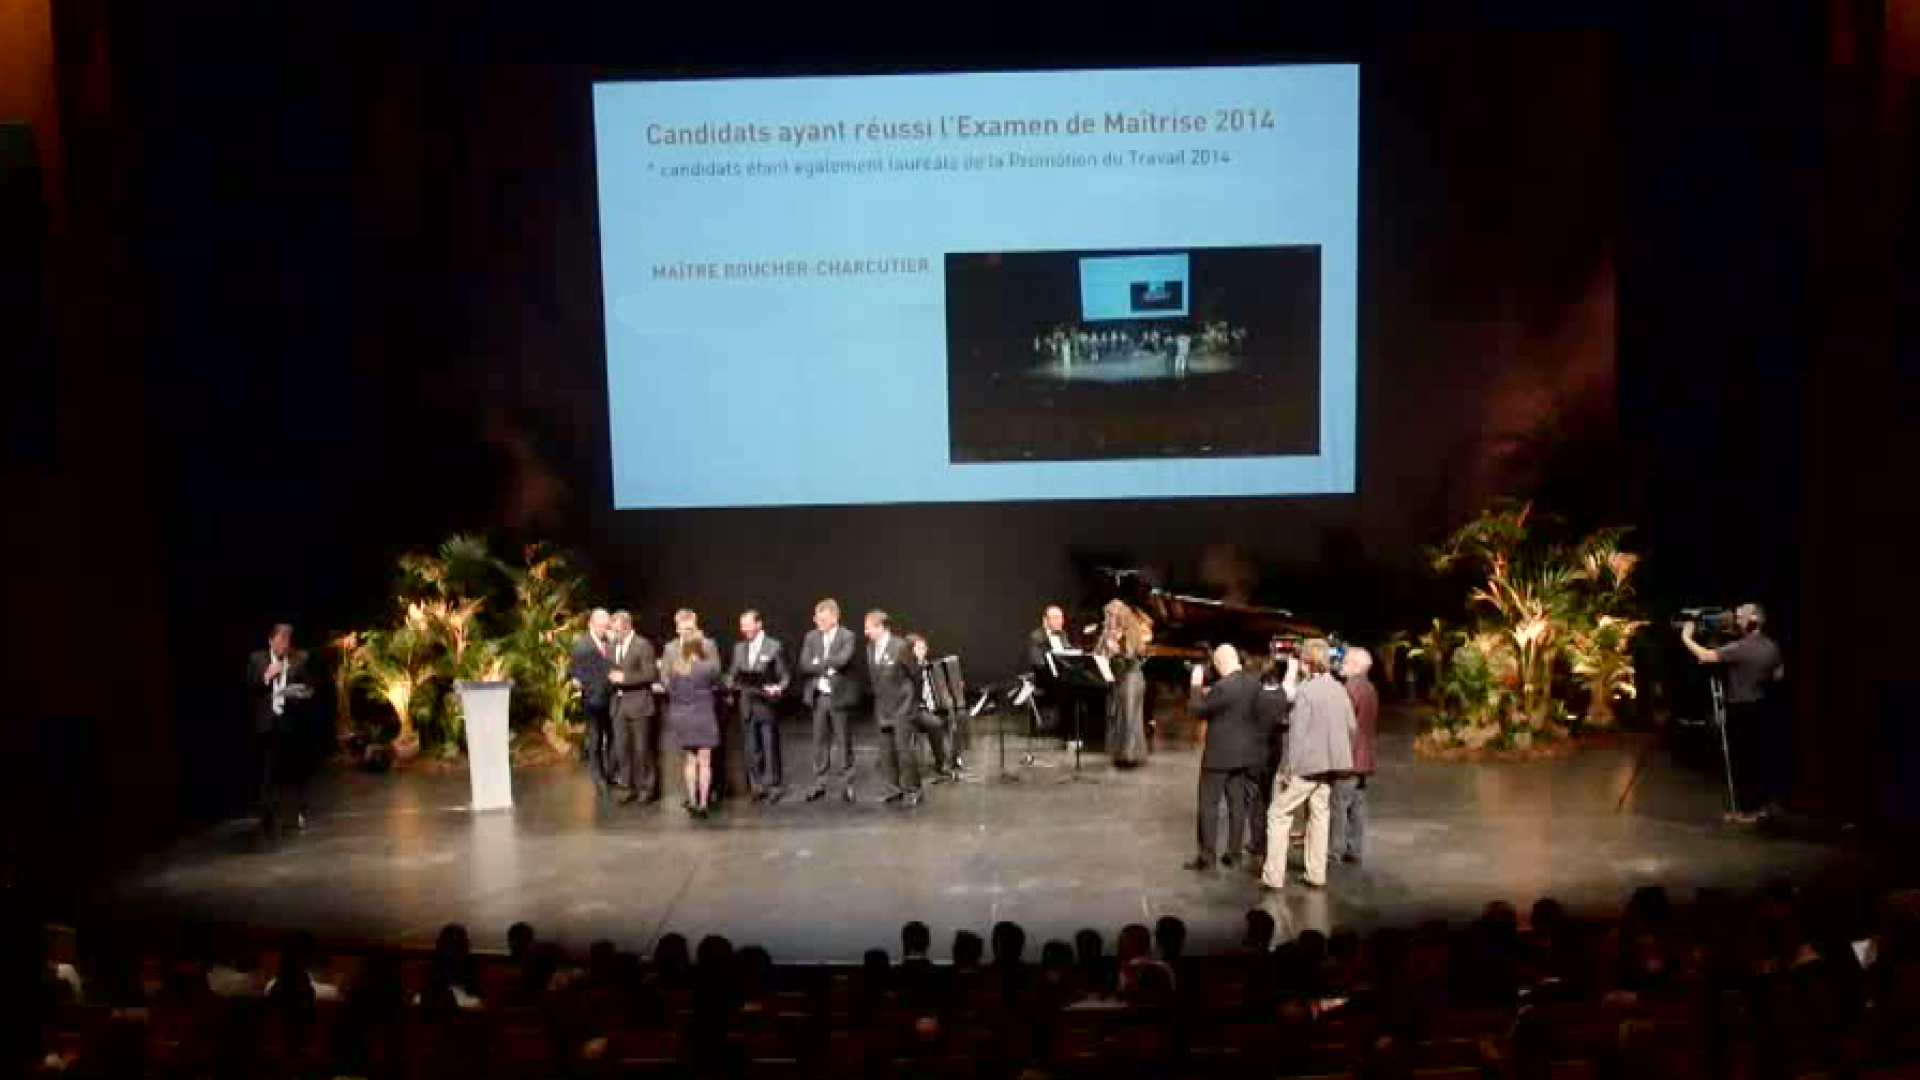 Video Remise Brevet de Maitrise session 2014